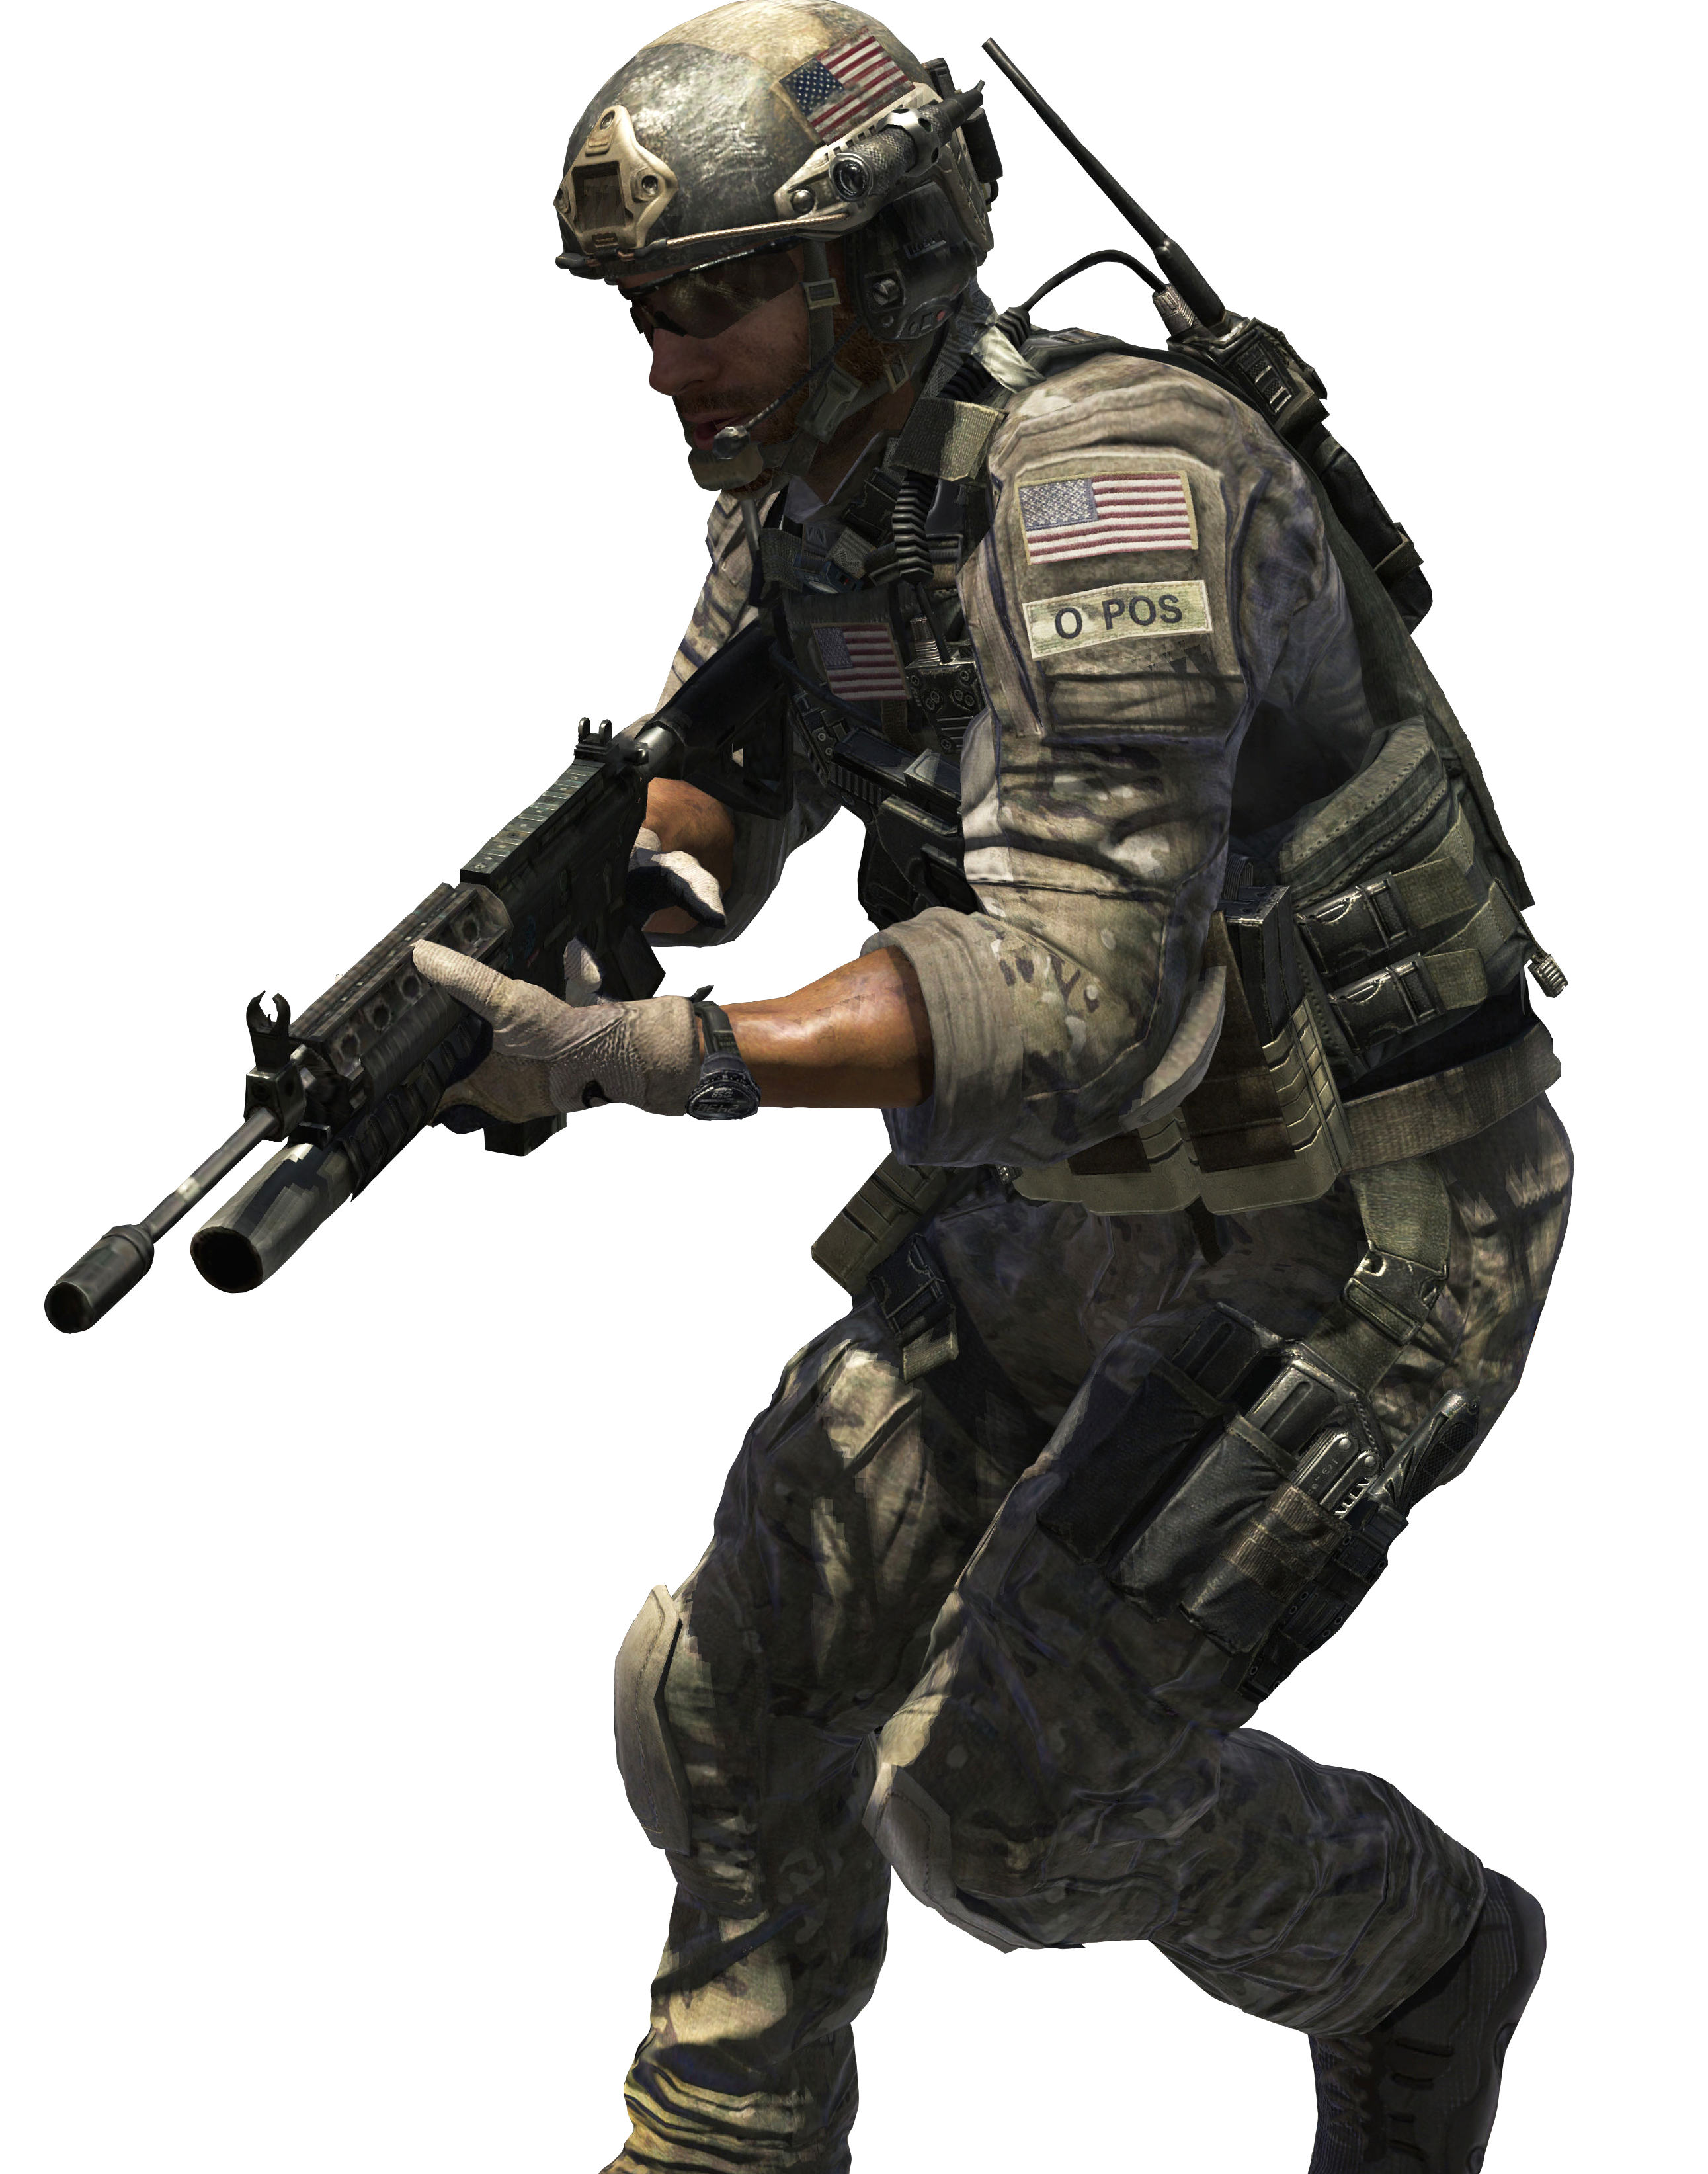 Soldier PNG Image.